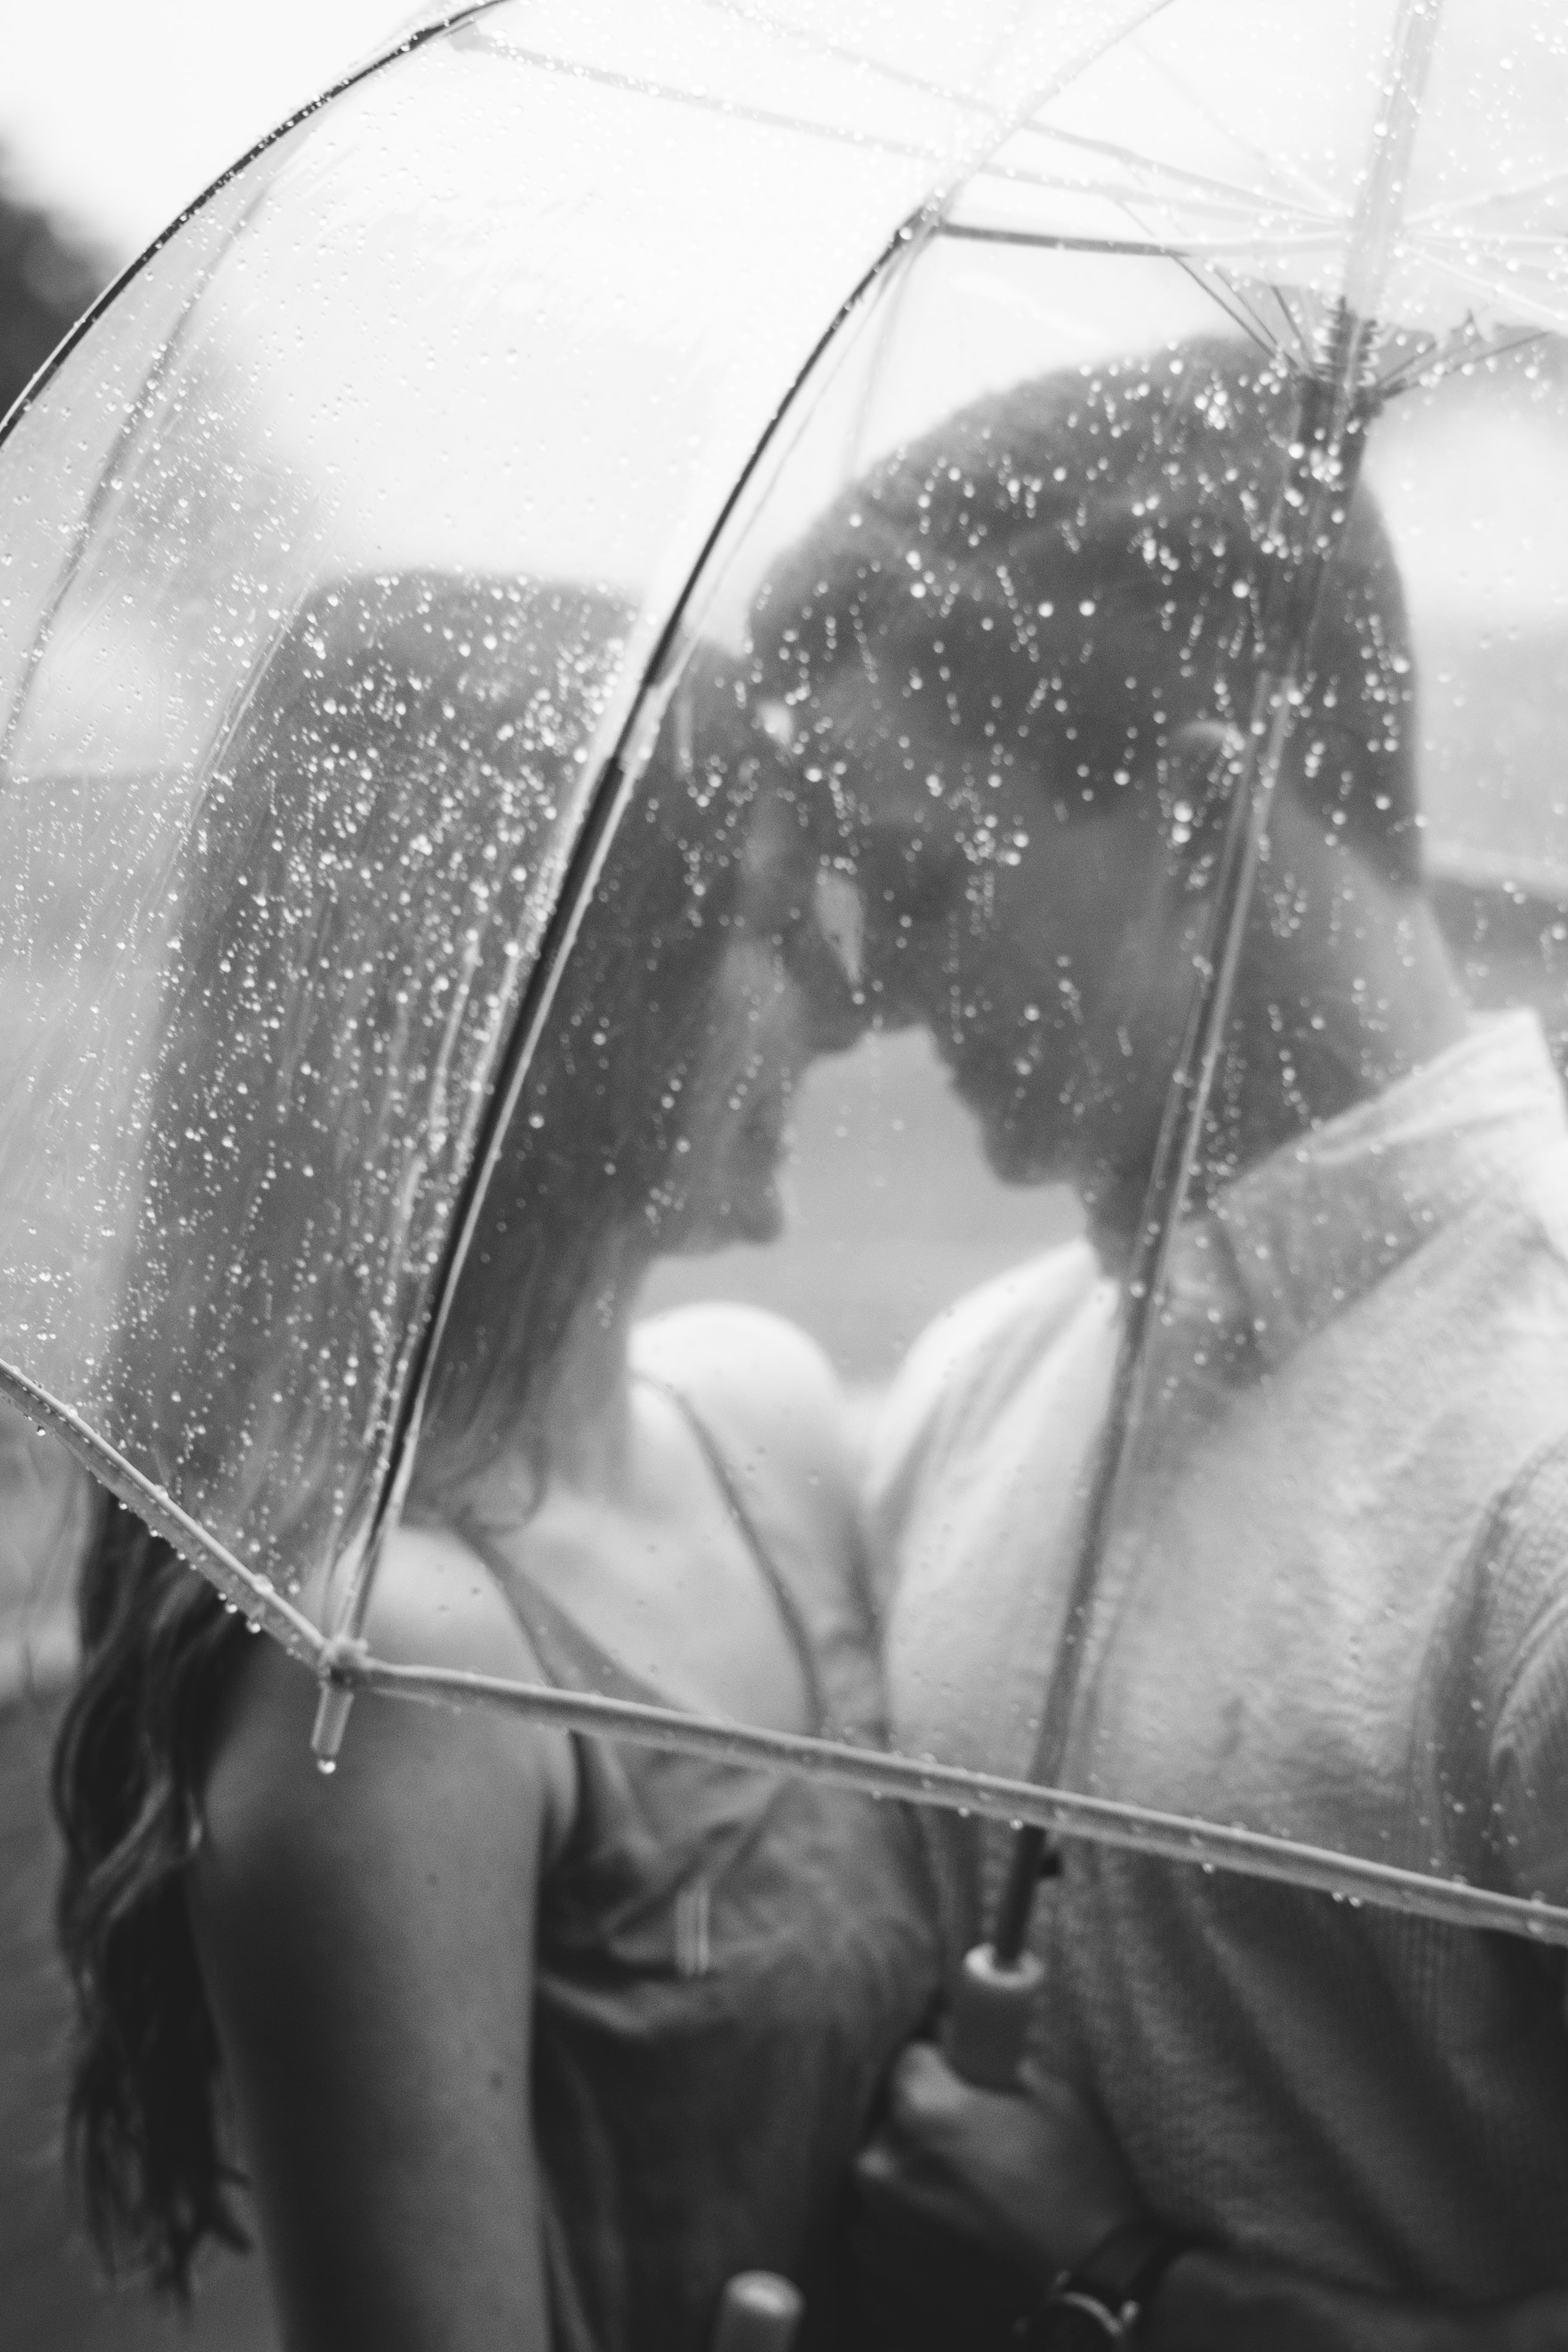 Couple stands close together under transparent umbrella in the rain